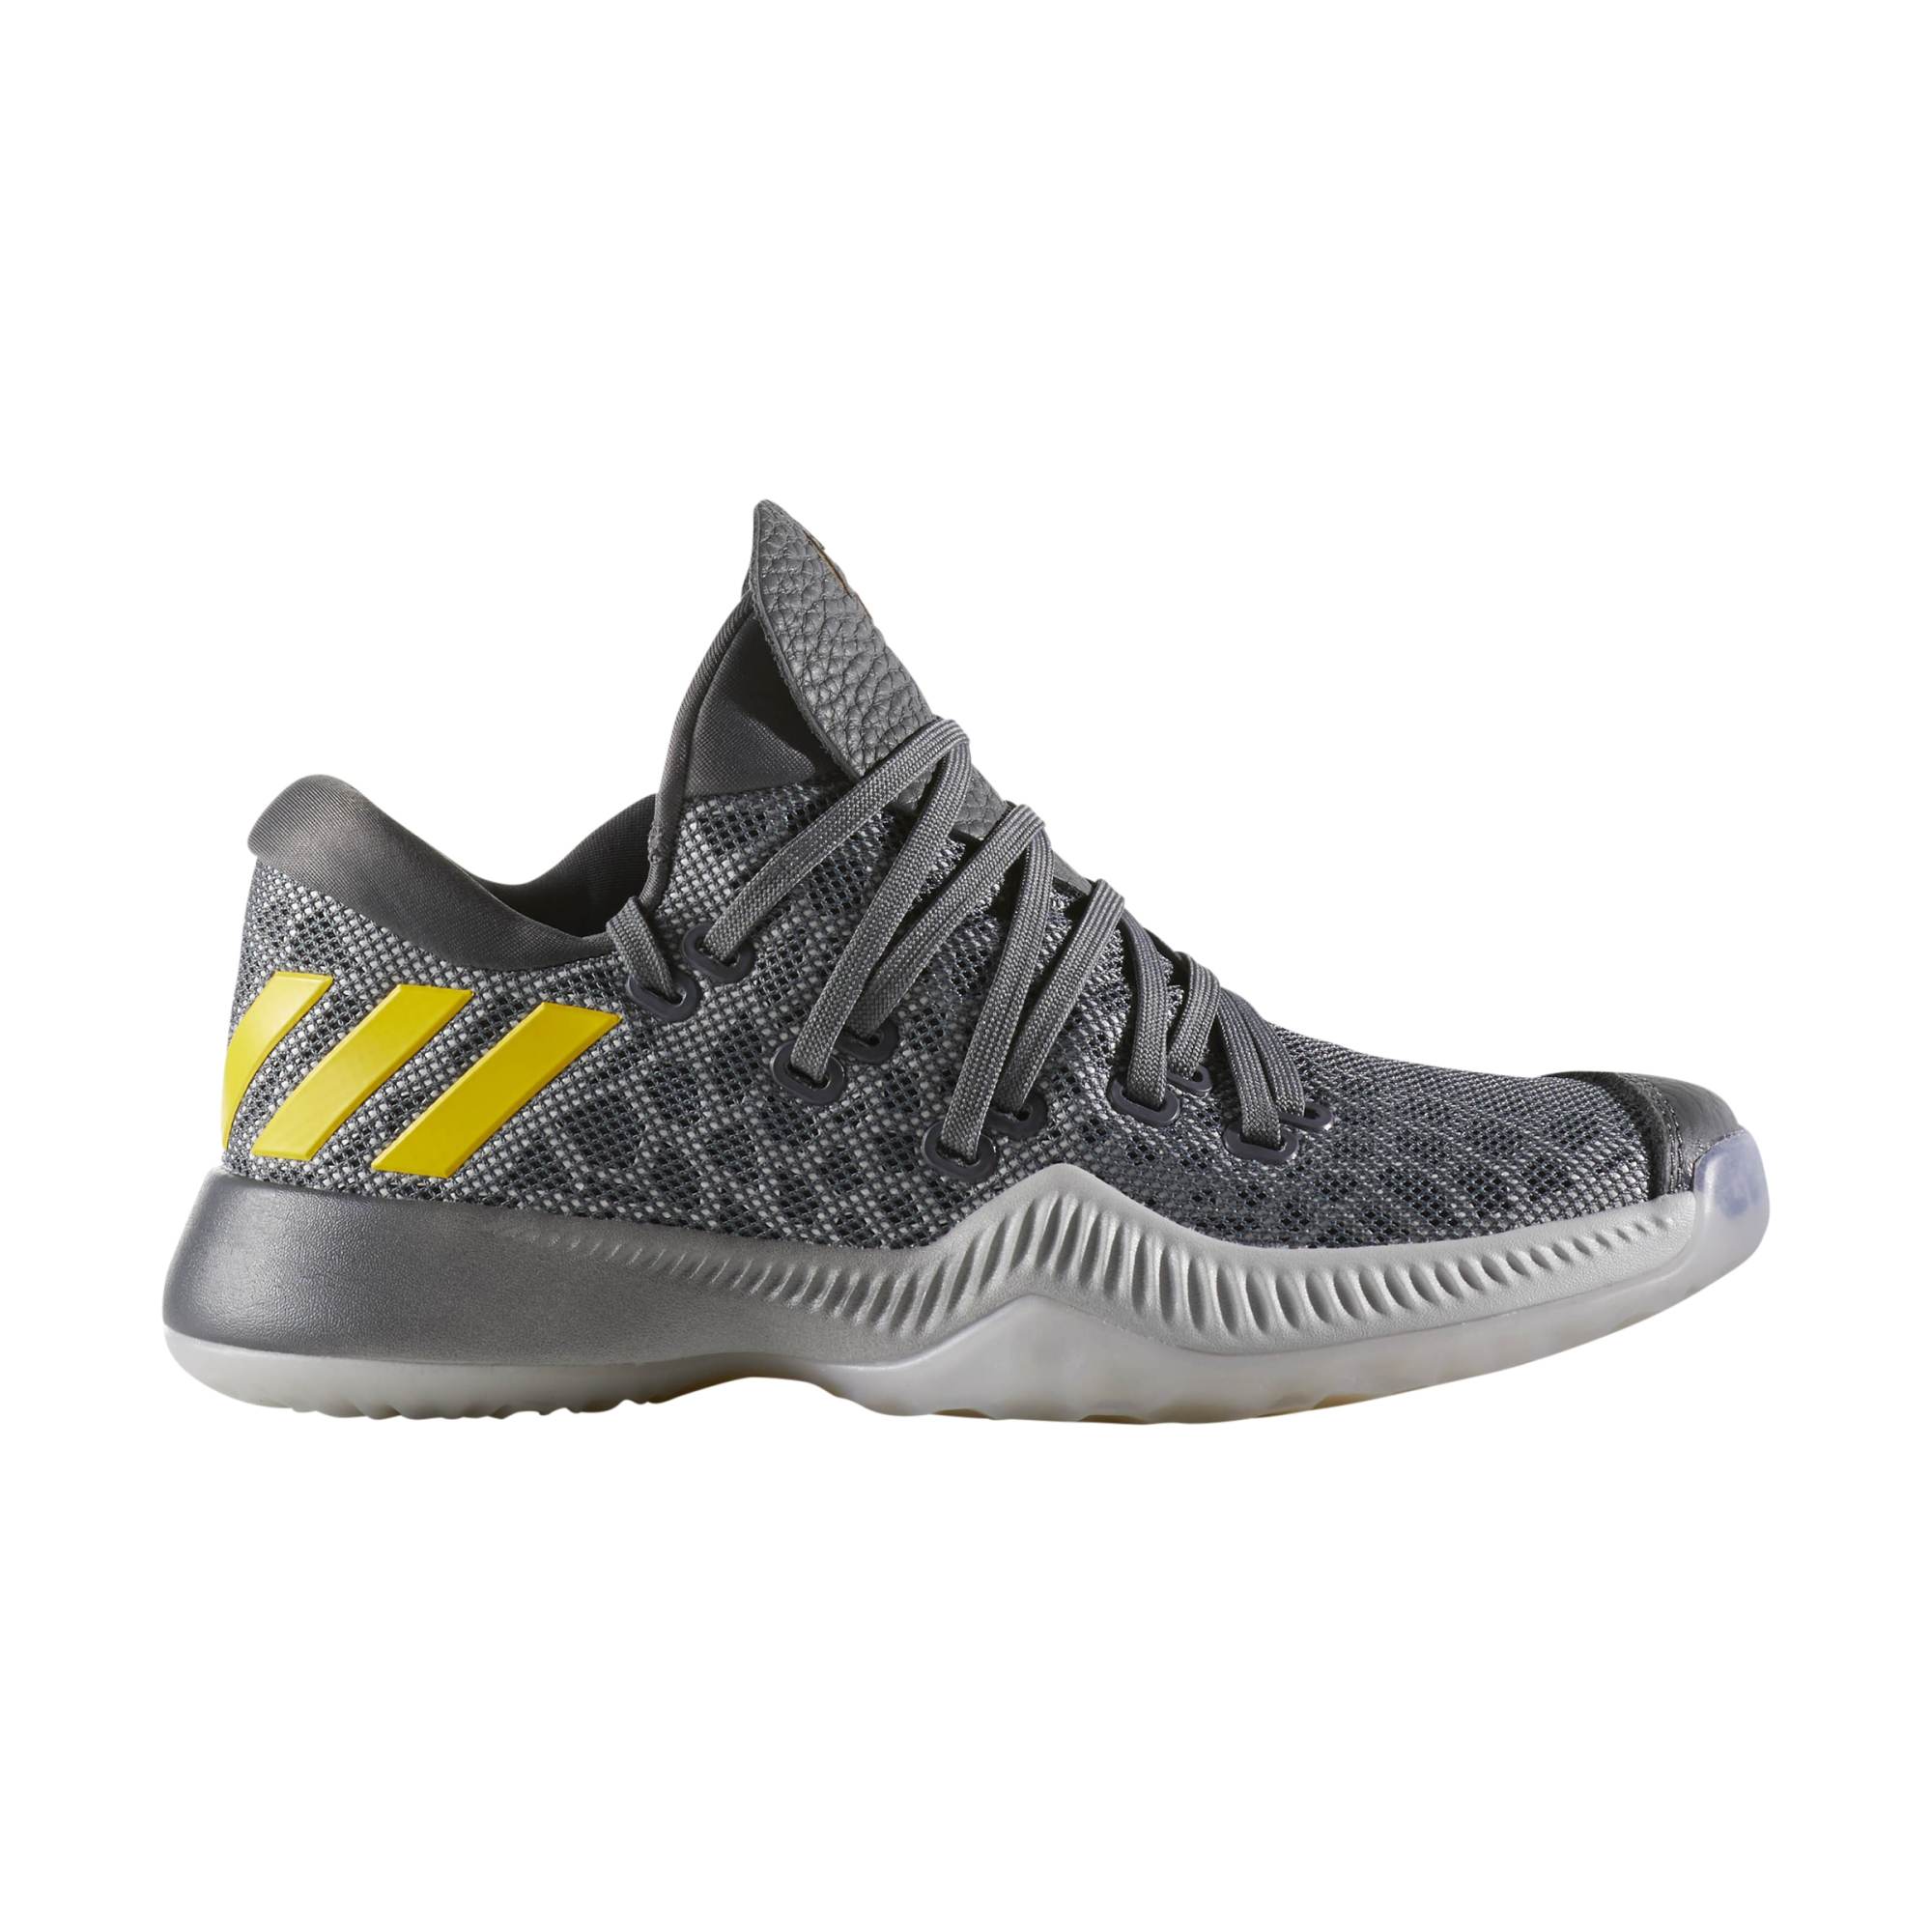 100% authentic 791a8 dd7b9 Adidas Harden B E